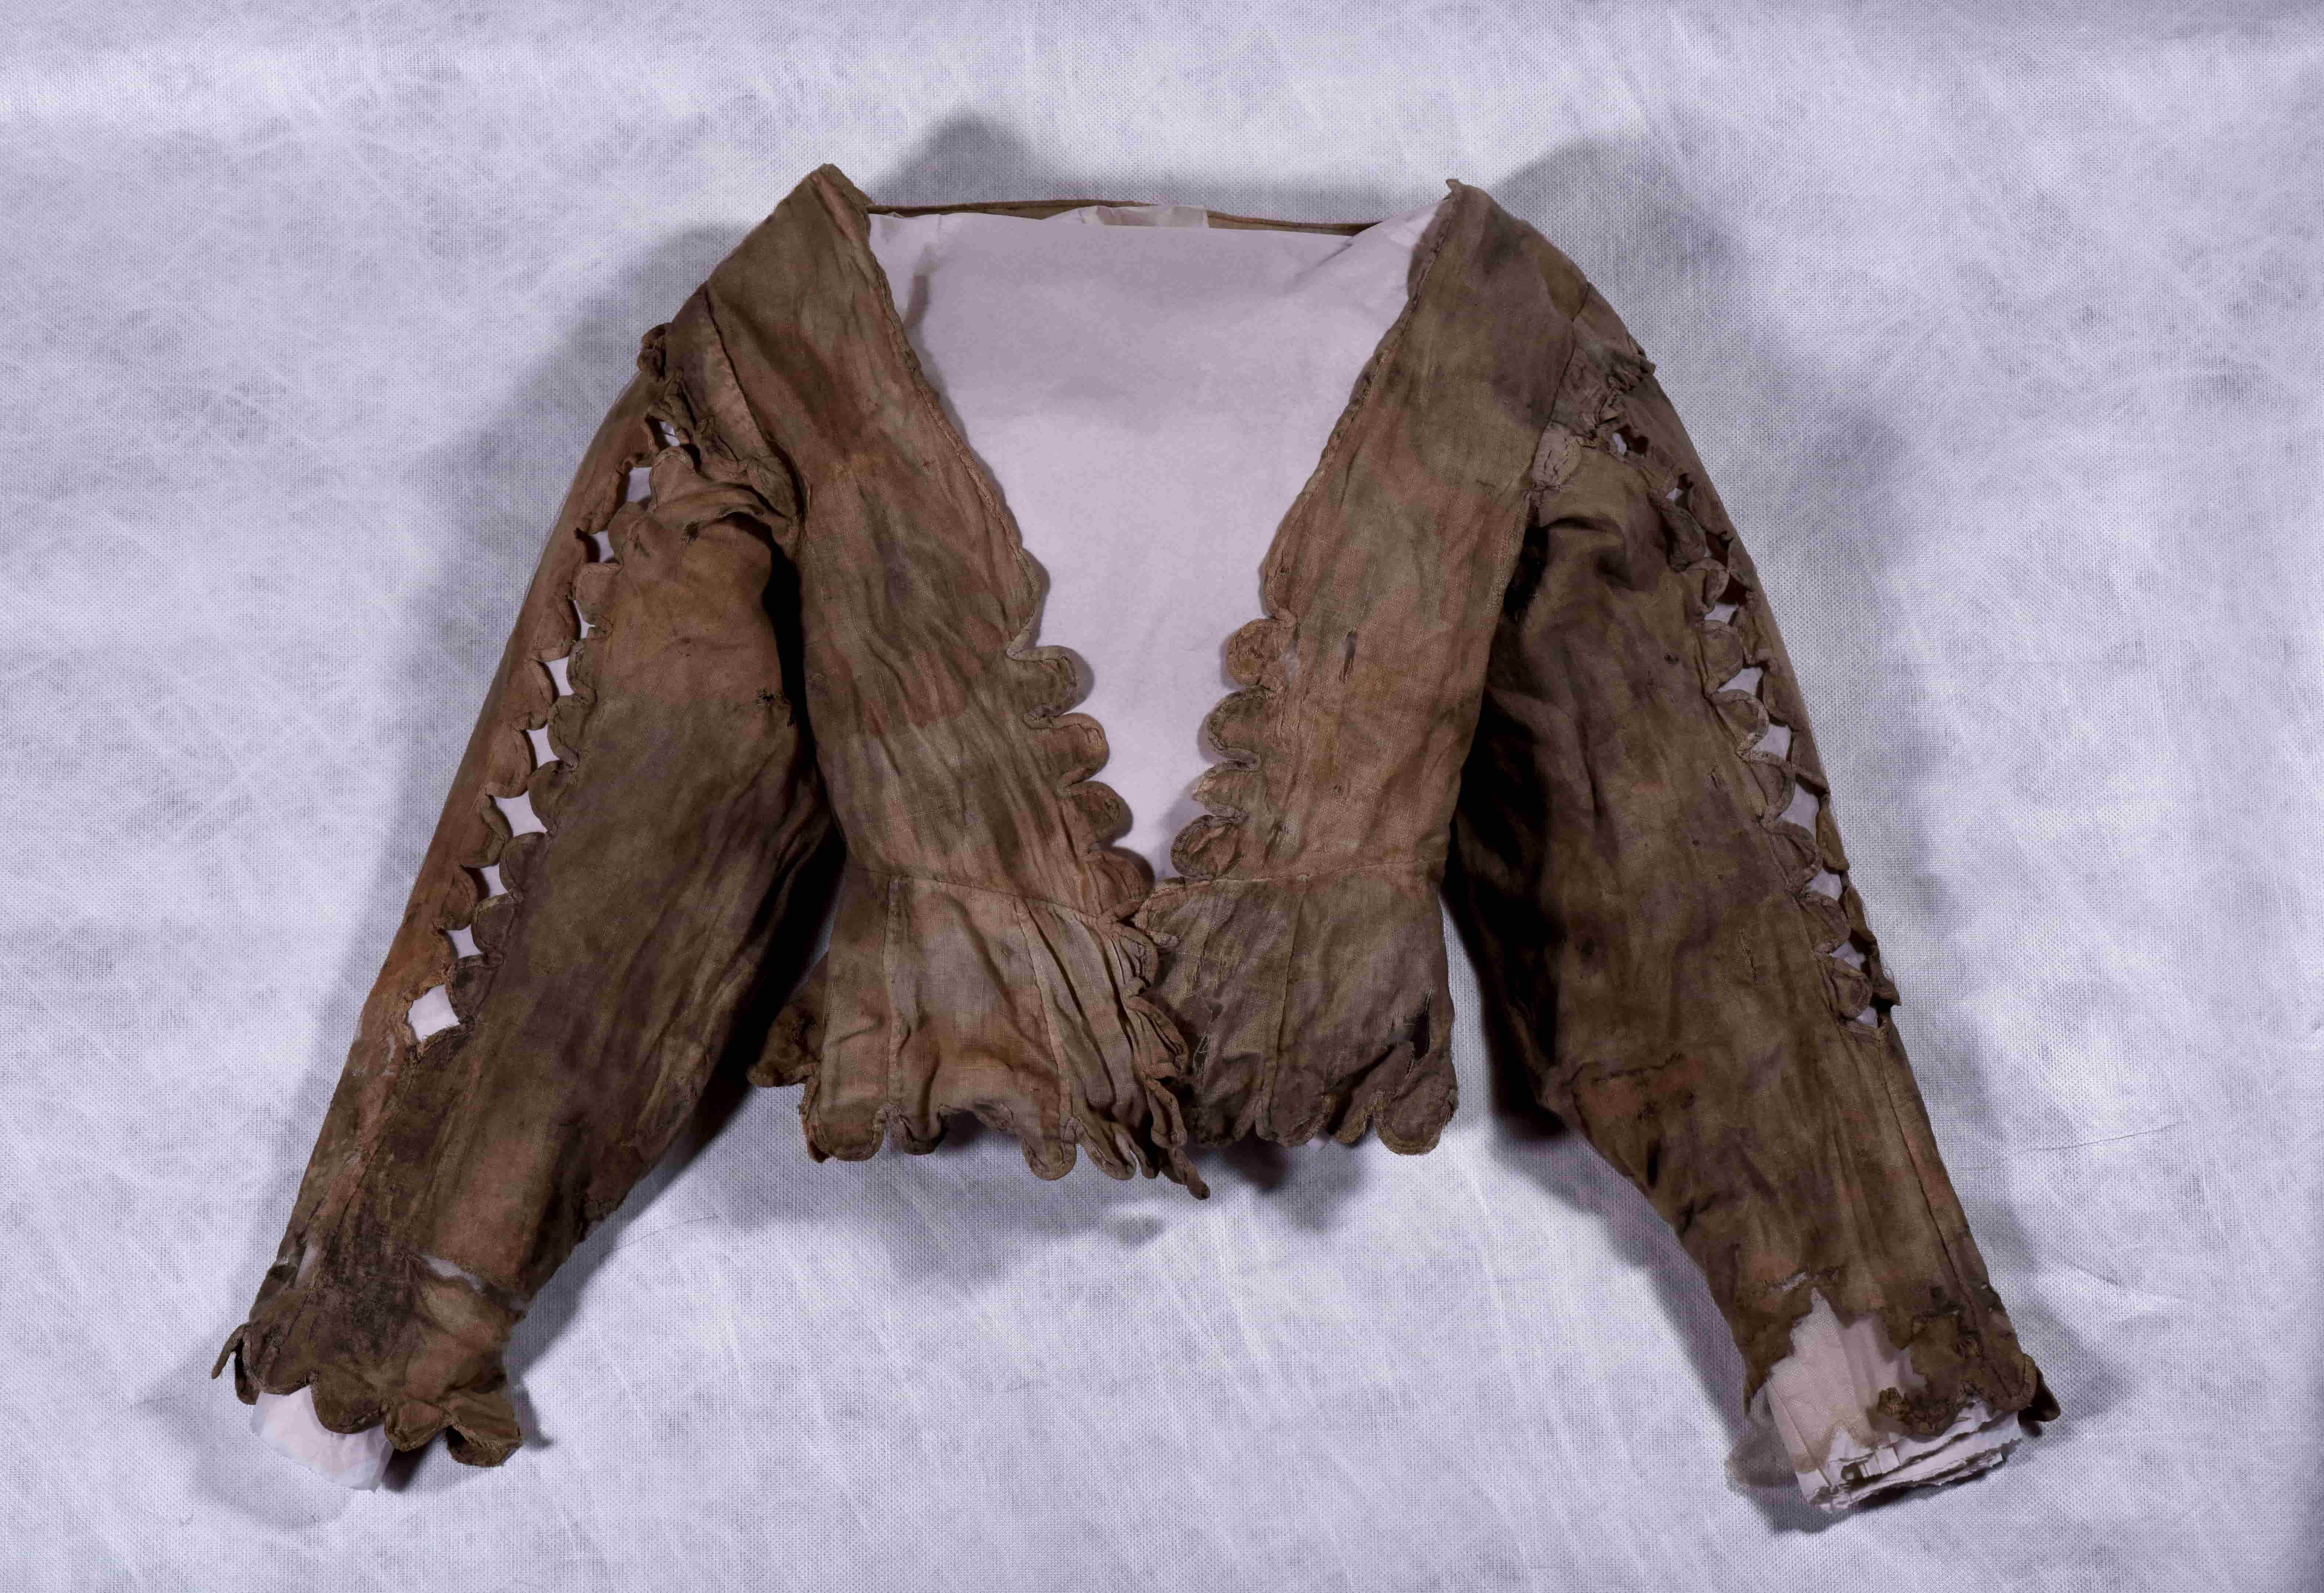 A woman's bodice with long sleeves. There are diamond-shaped cut-outs along the sleeves and scalloped edging to the cuffs, hem, and opening of the bodice